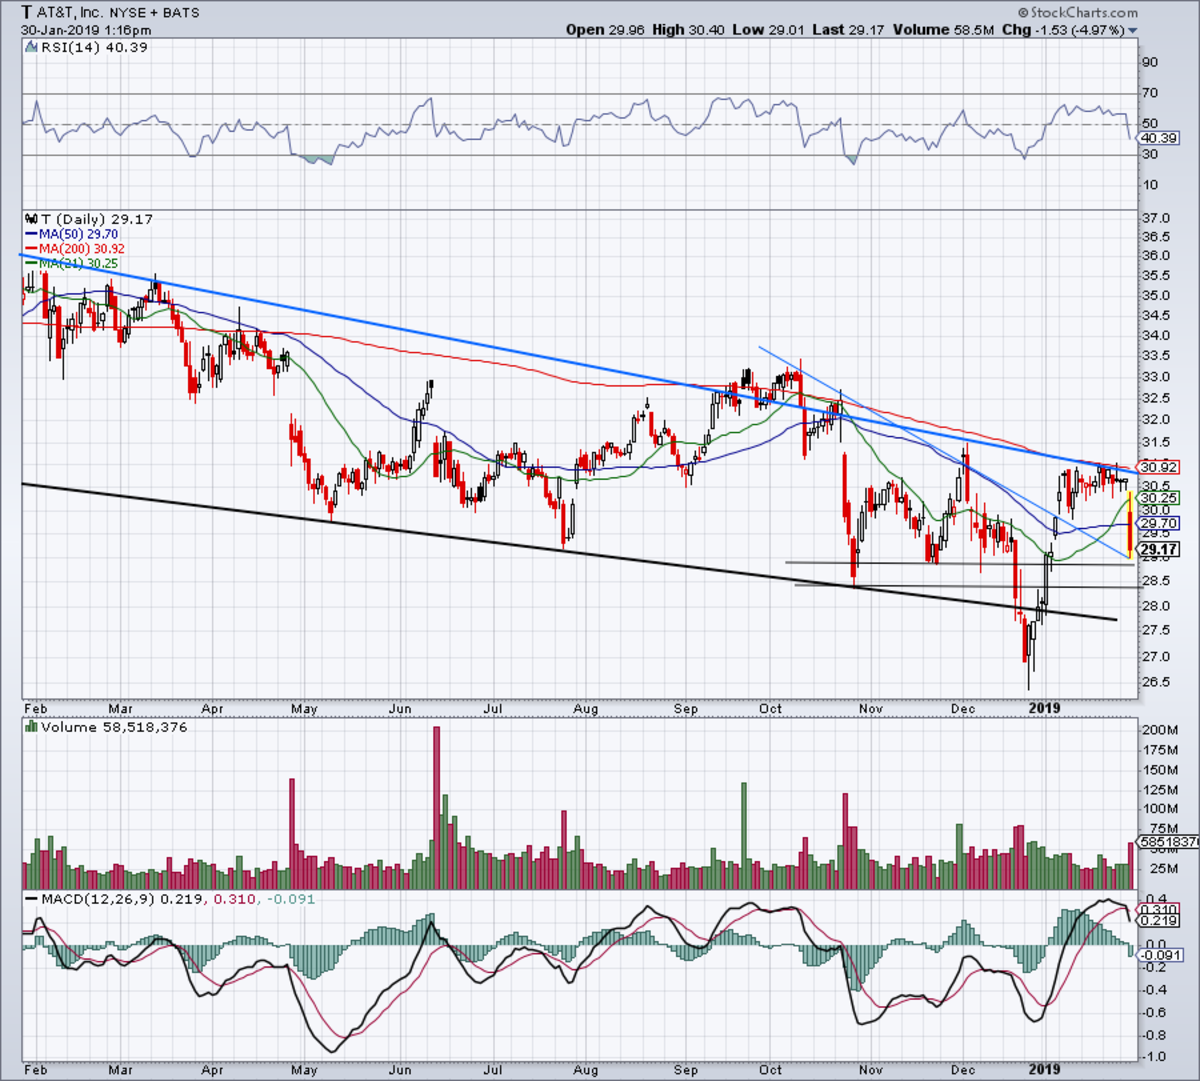 One-year daily chart of AT&T stock